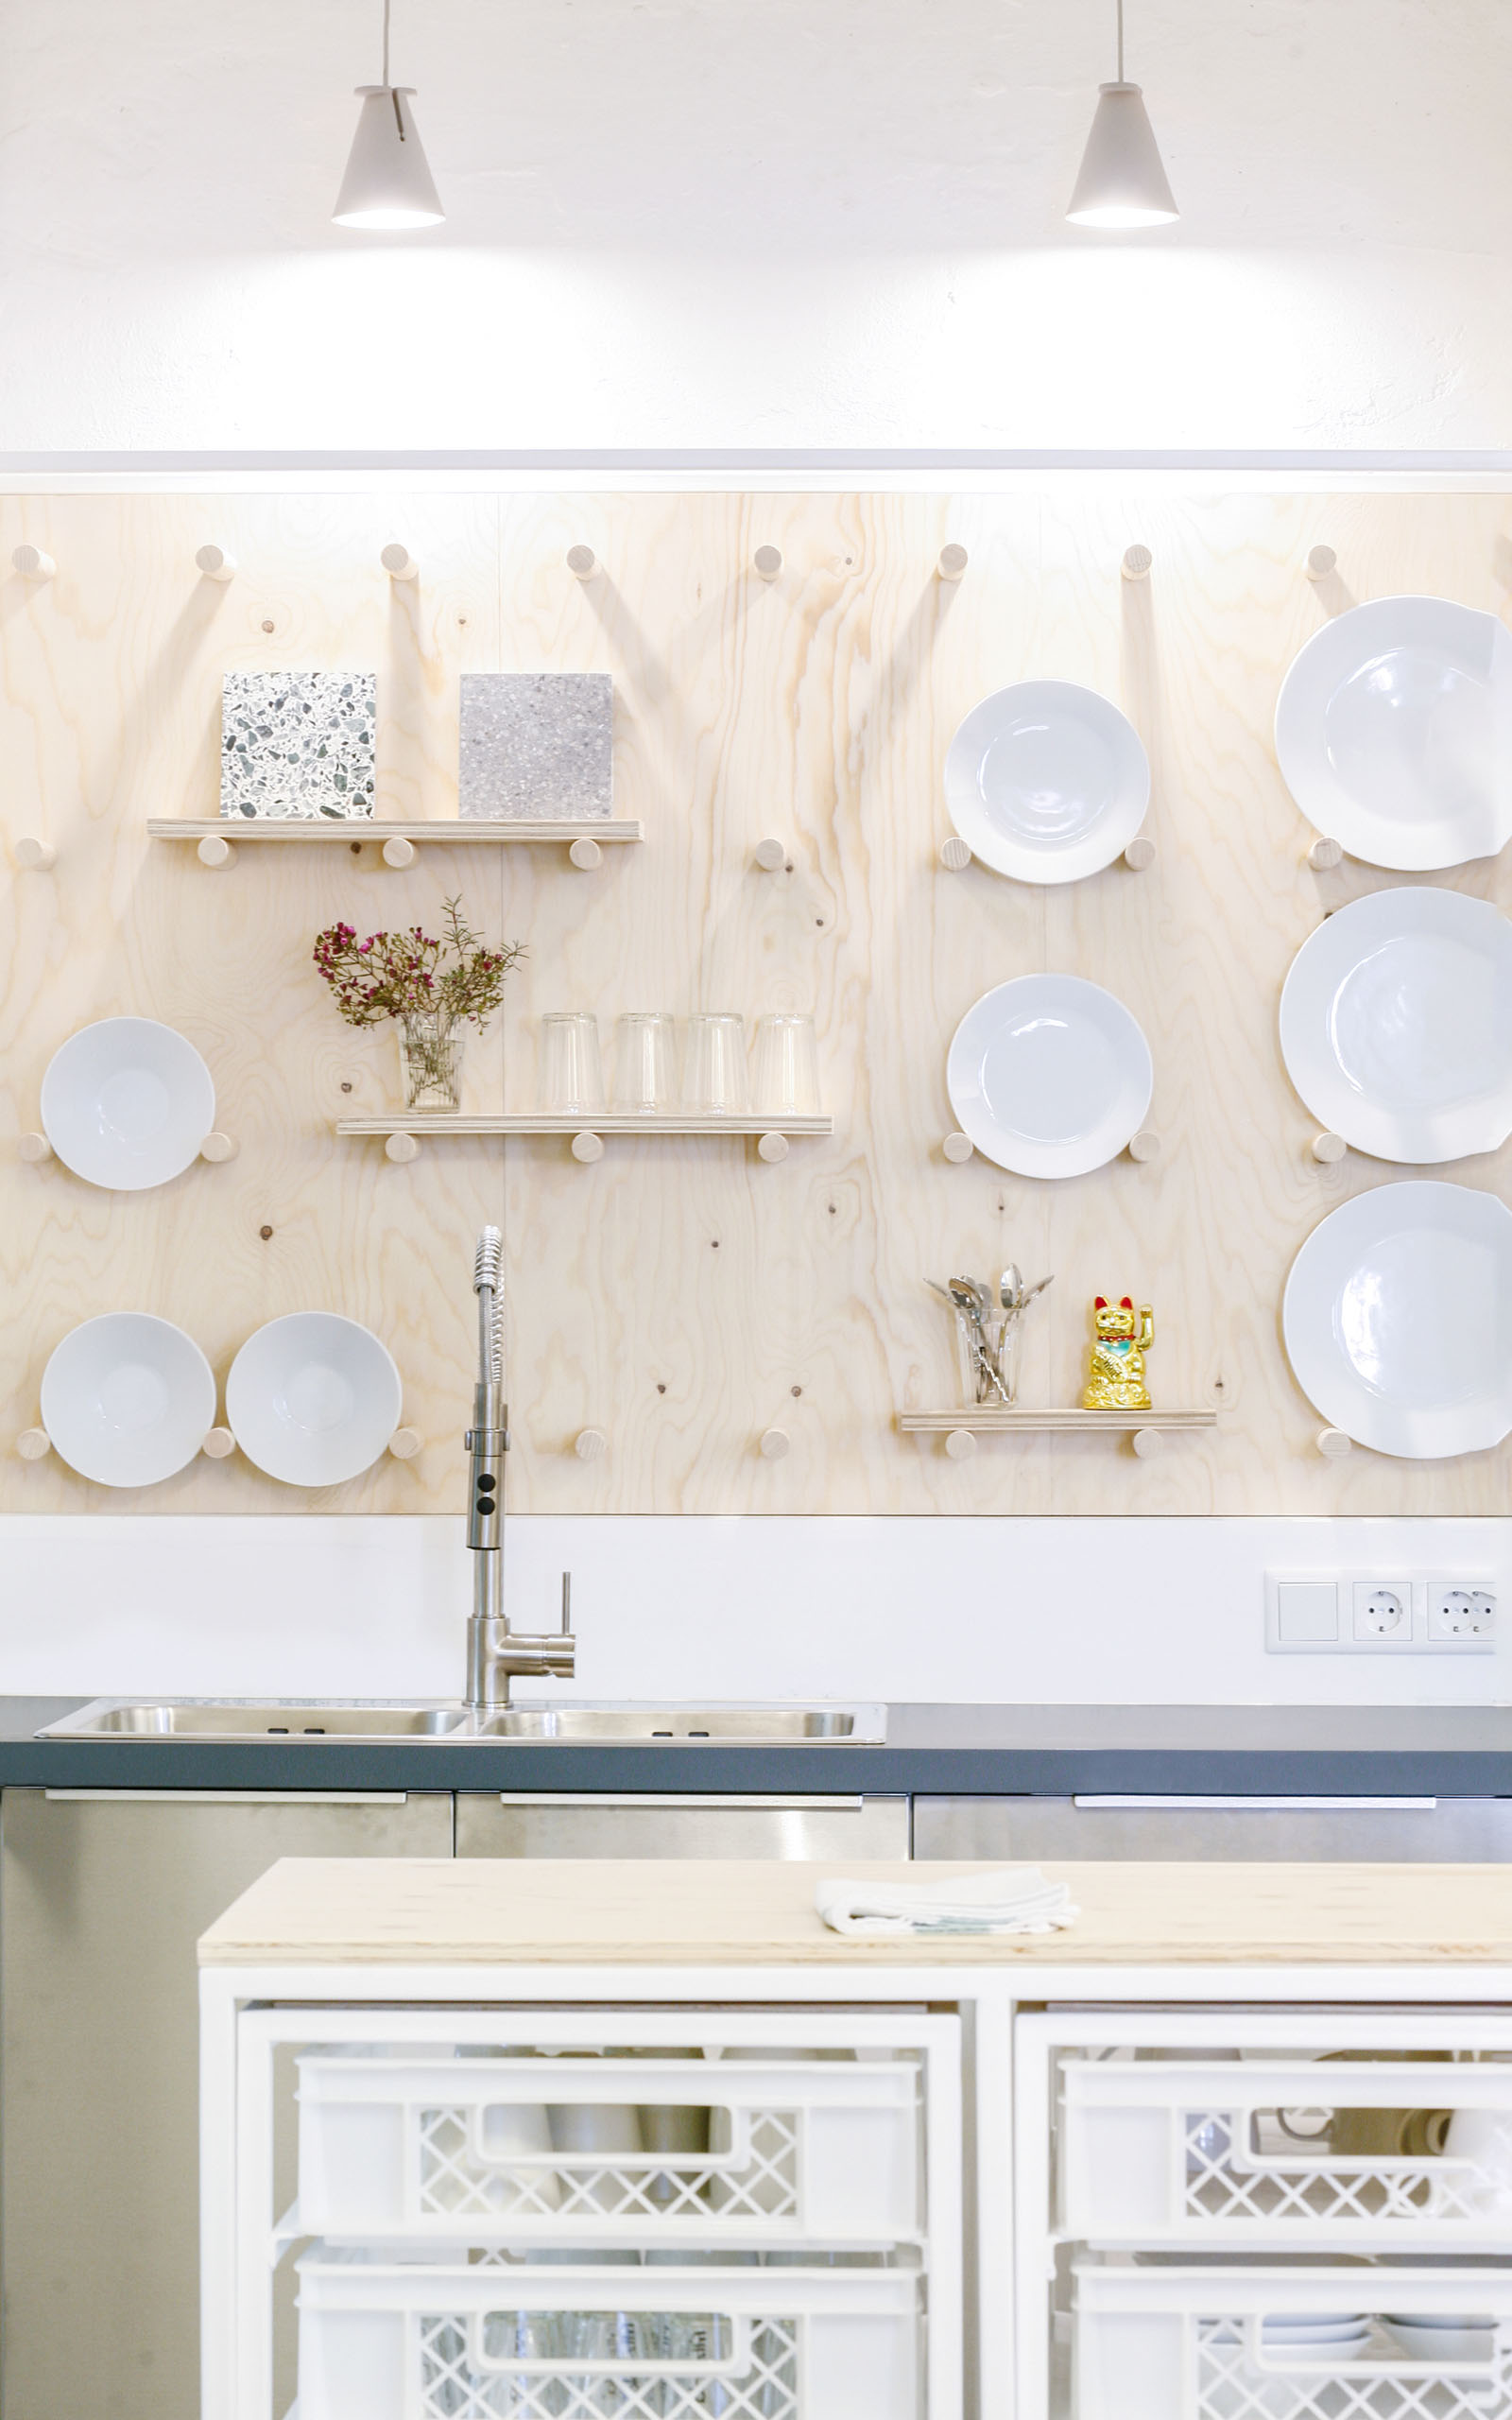 A kitchen with plates hanging of the wall.